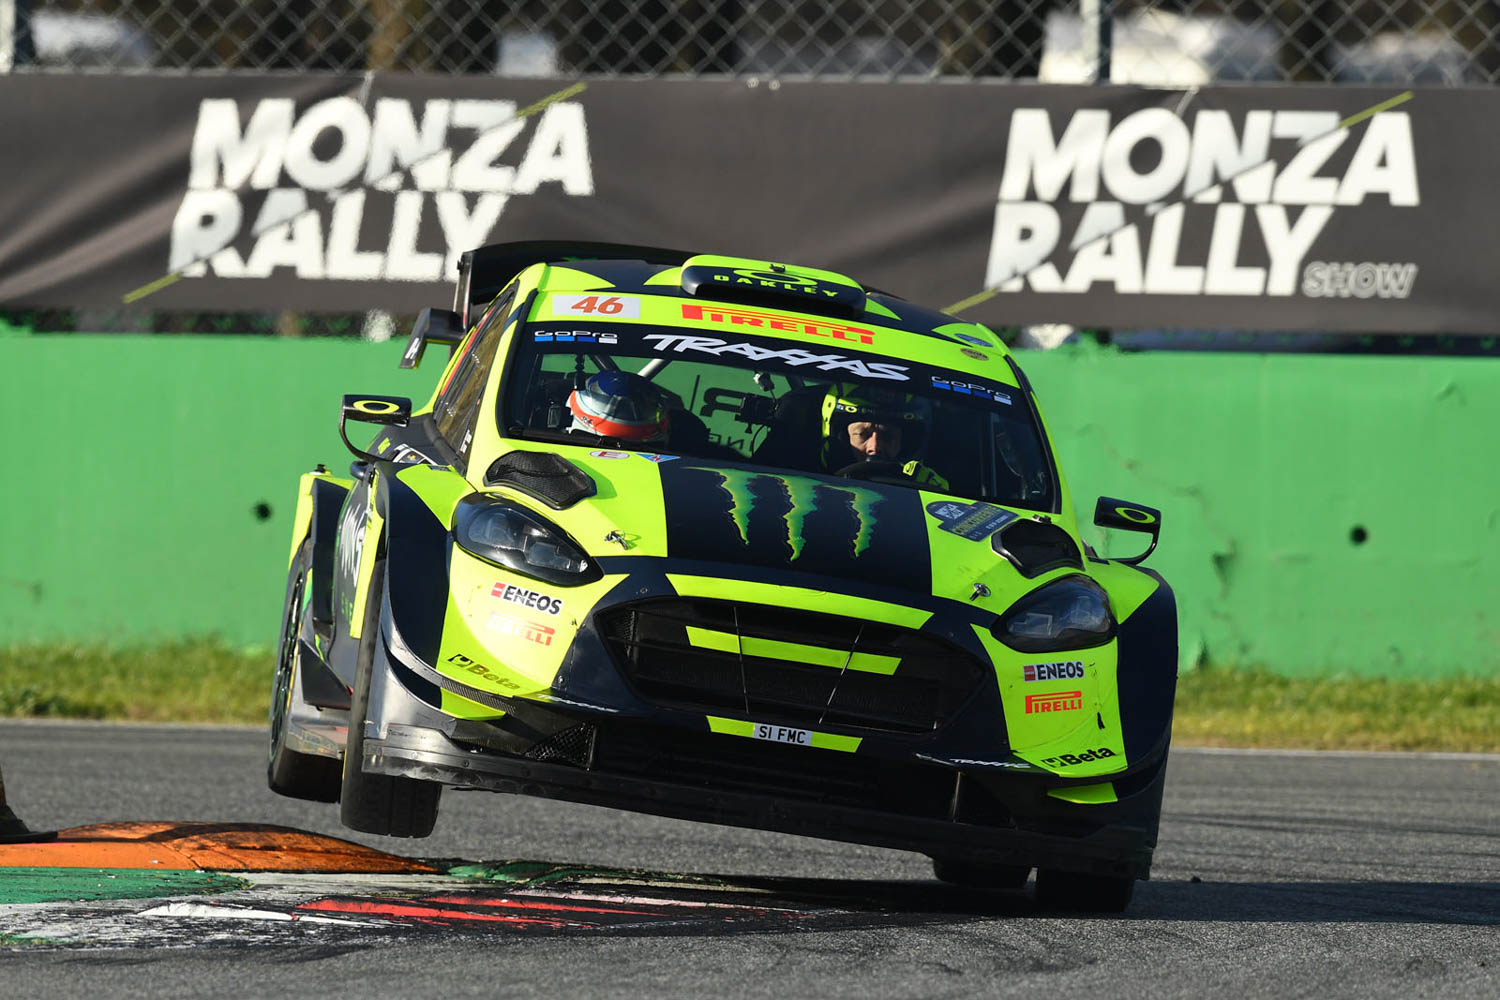 Rossi goes flatout wins his seventh Monza Rally Show